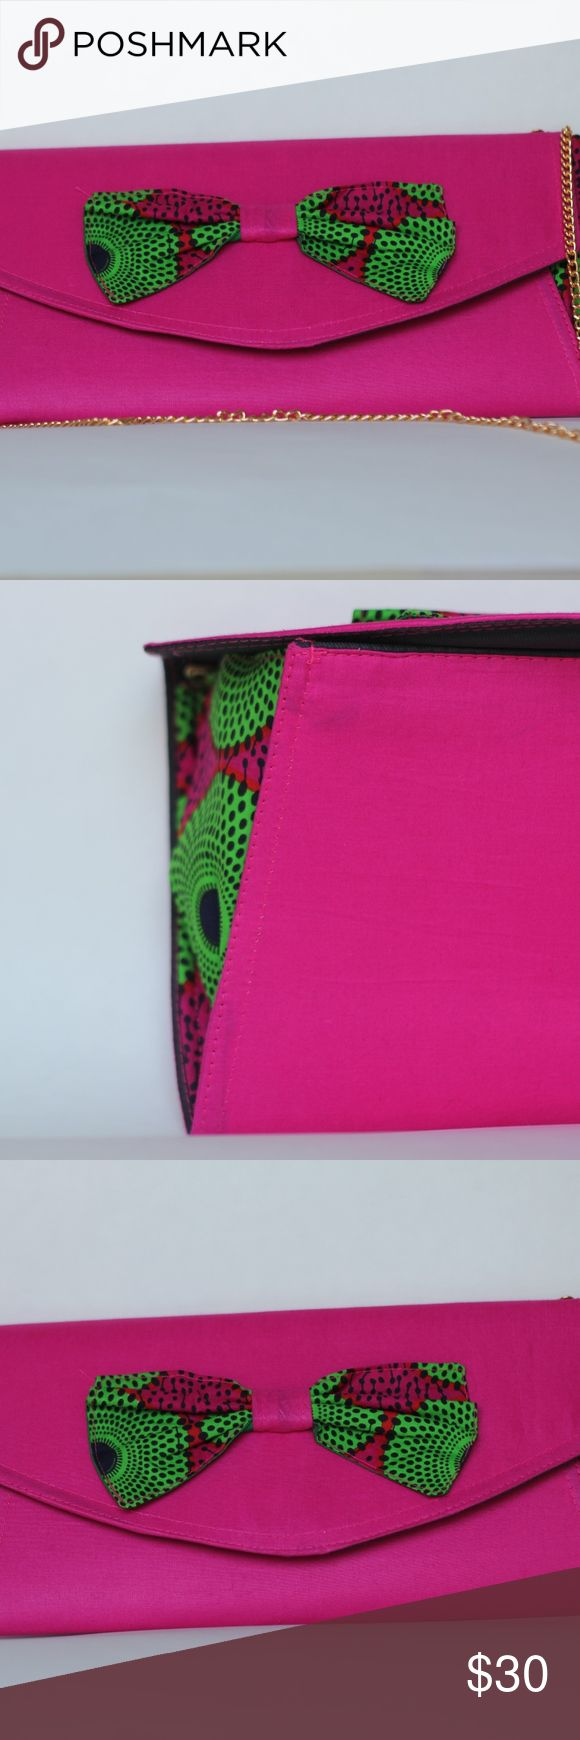 Pink African Purse This purse is 12x14 inches and can be used as a clutch or regular purse, with a strap. It is made of African print, and recycled cardboard. Purse was made in Ghana by a female small business owner. Can be used with a dress, pants or jeans. Bags Clutches & Wristlets